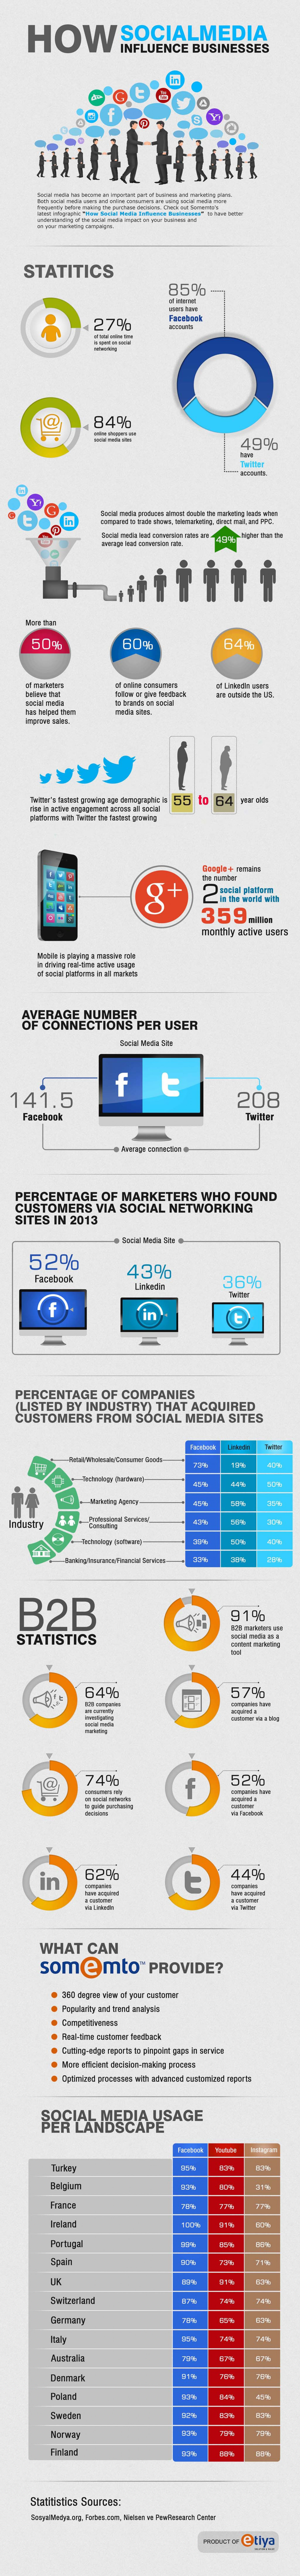 Social Media Influence on Businesses  Infographic